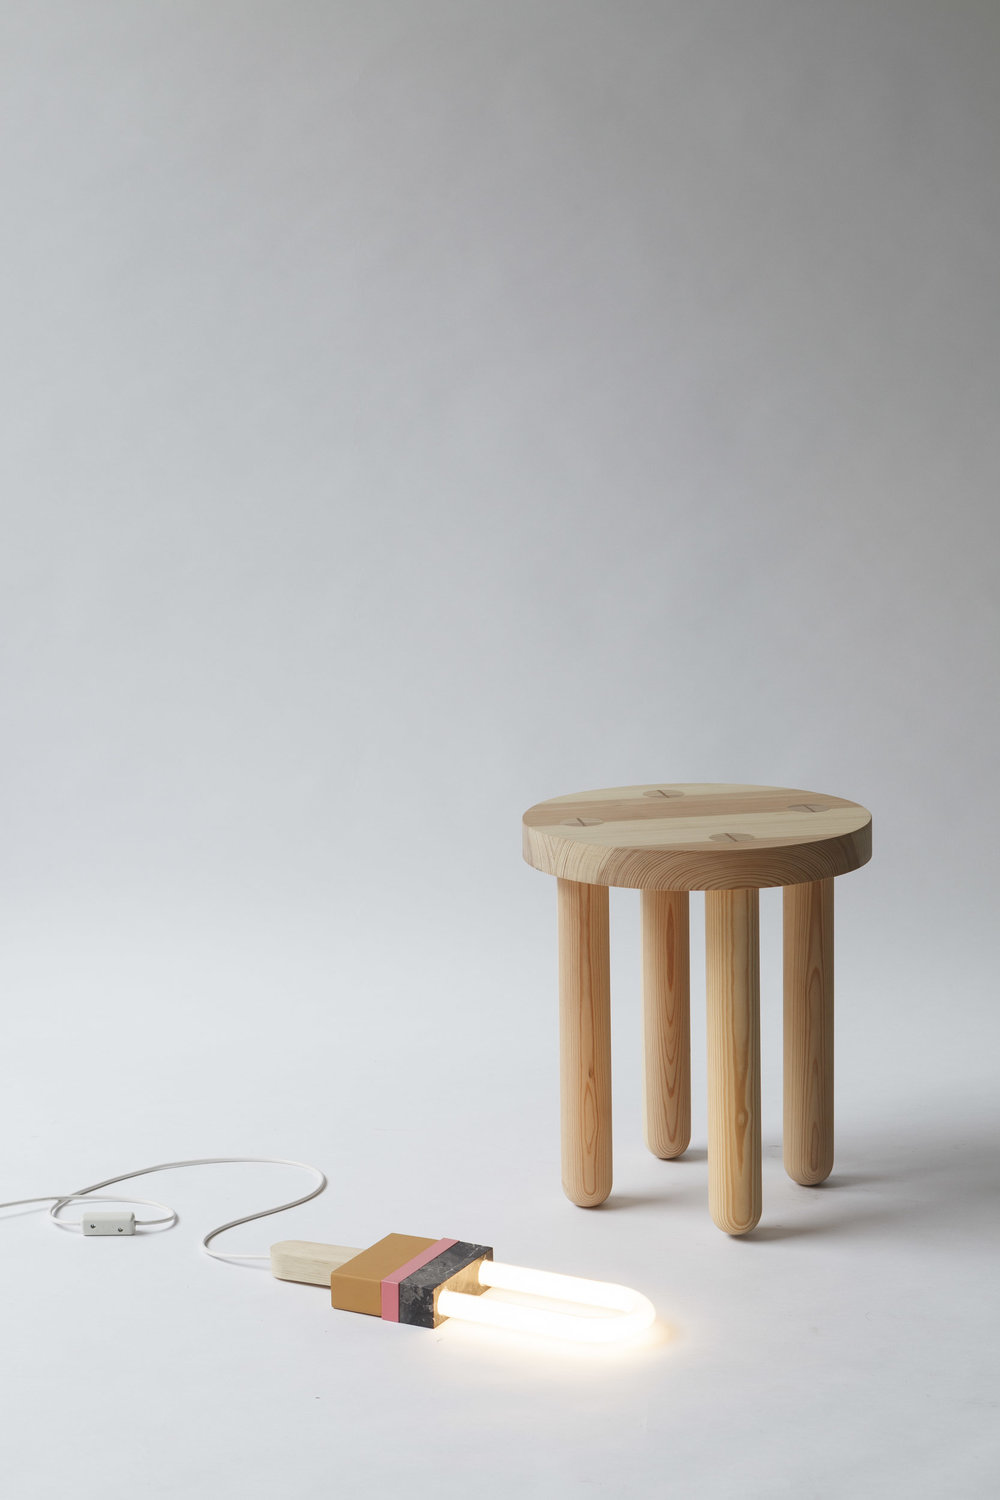 STOOL DOT DOT,  SOLID WOOD, OILED  40 x 40 x 45cm